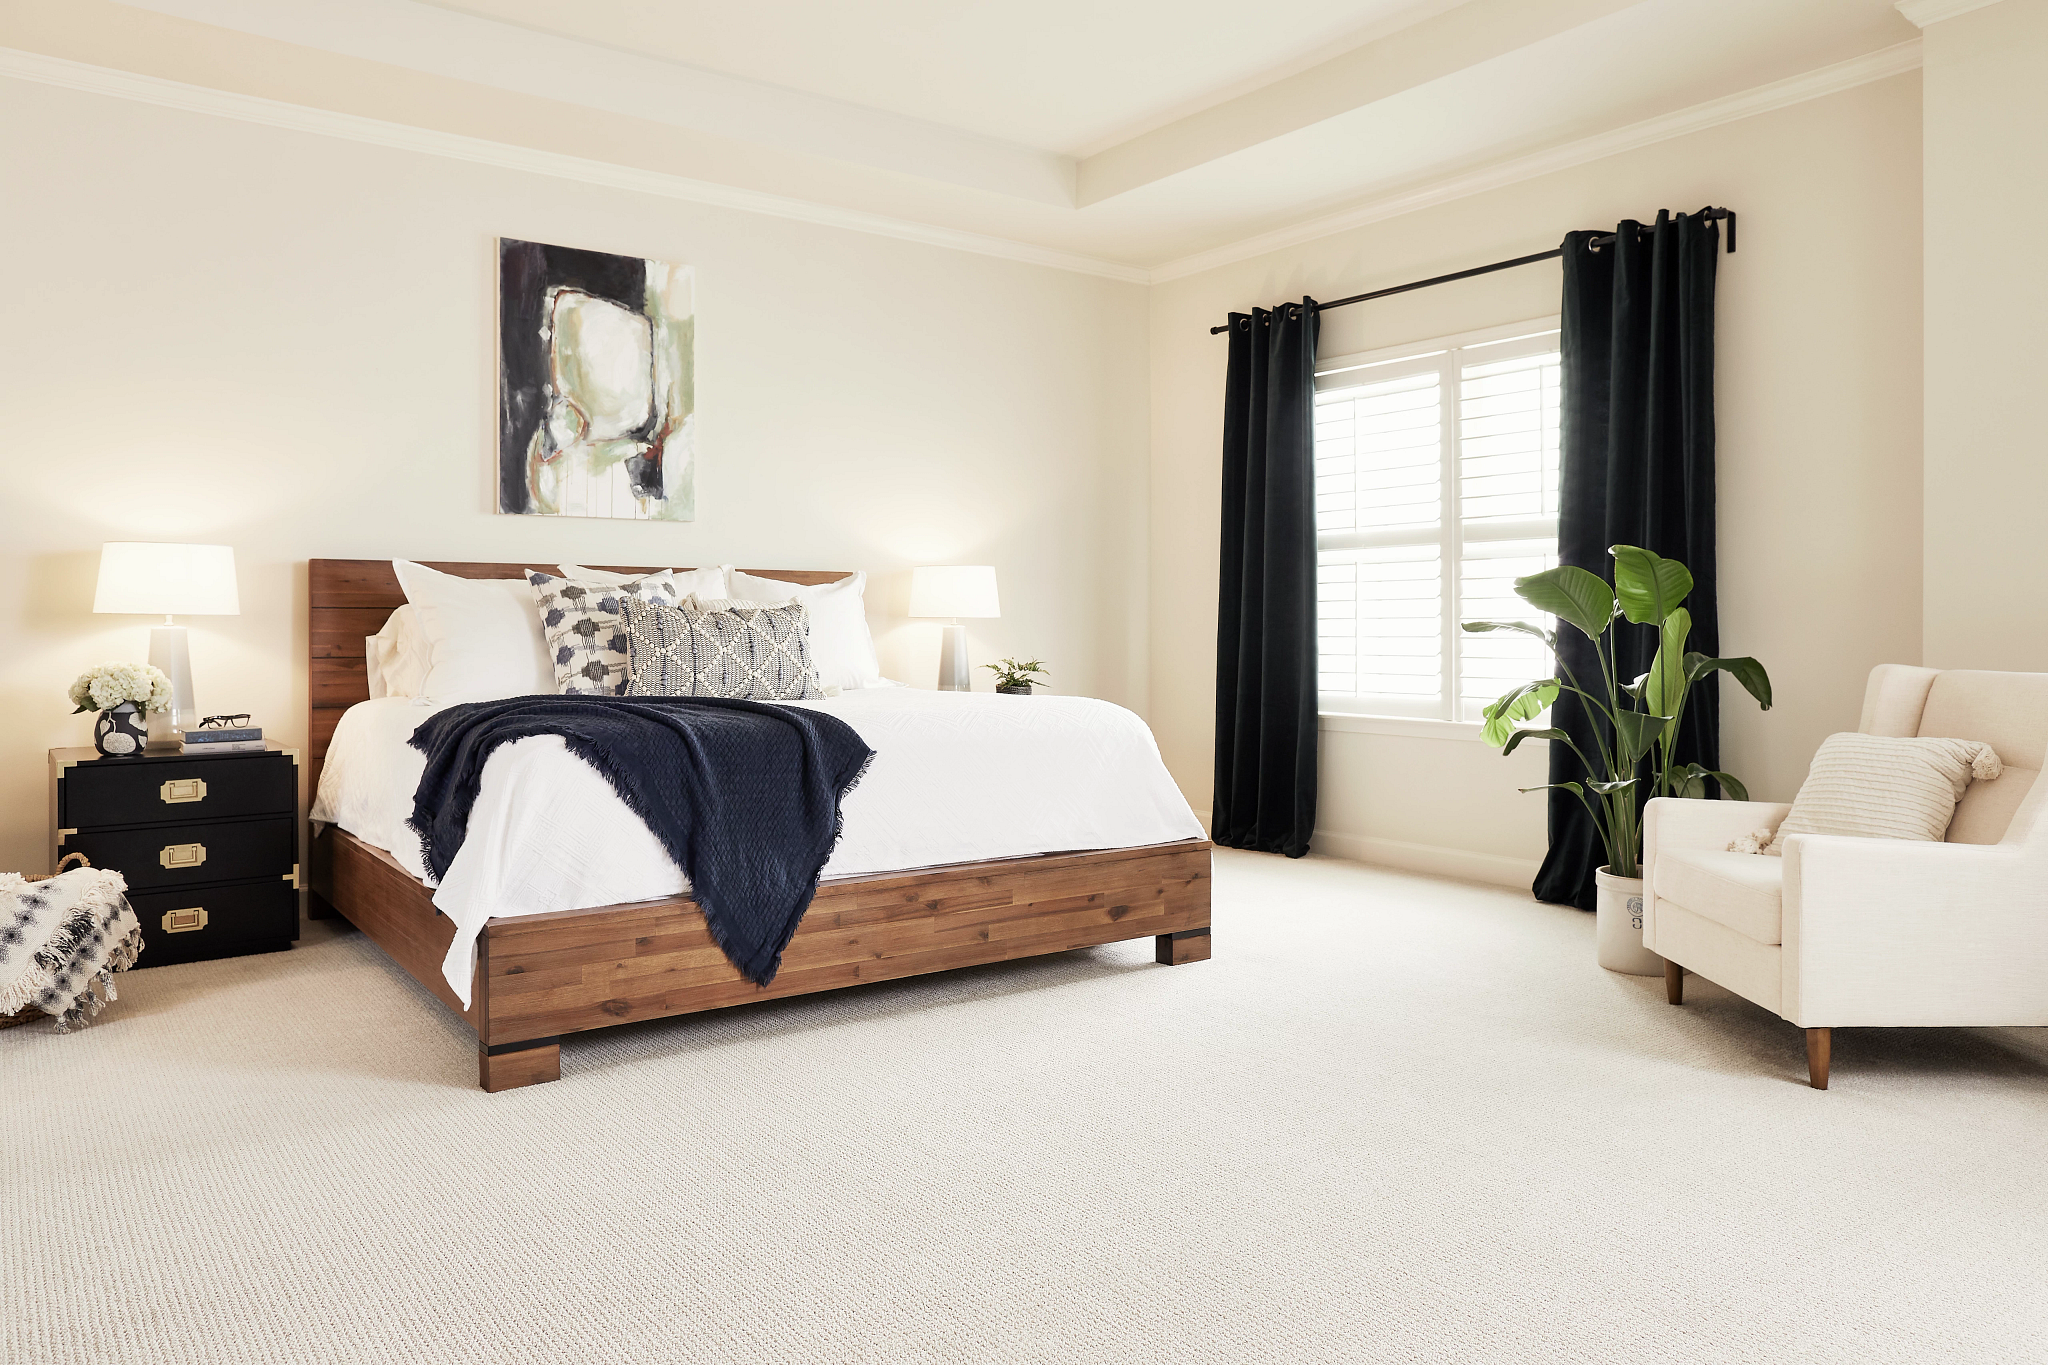 Image of bedroom featuring Translate carpet in color Biscuit